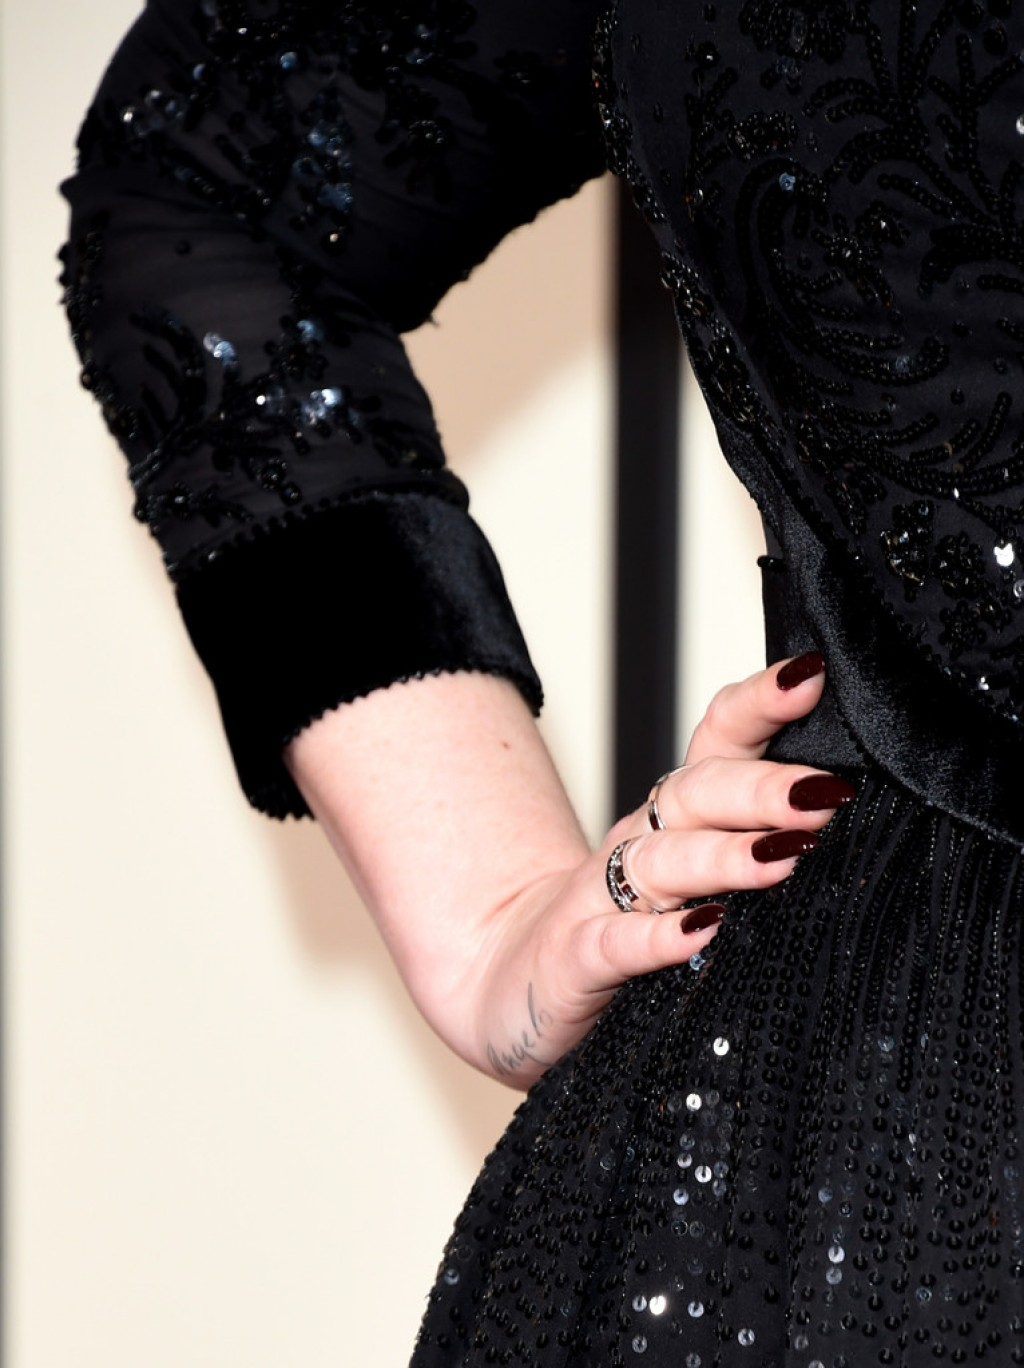 Adele-Wearing-Givenchy-2016-Grammys-a-1024x1368